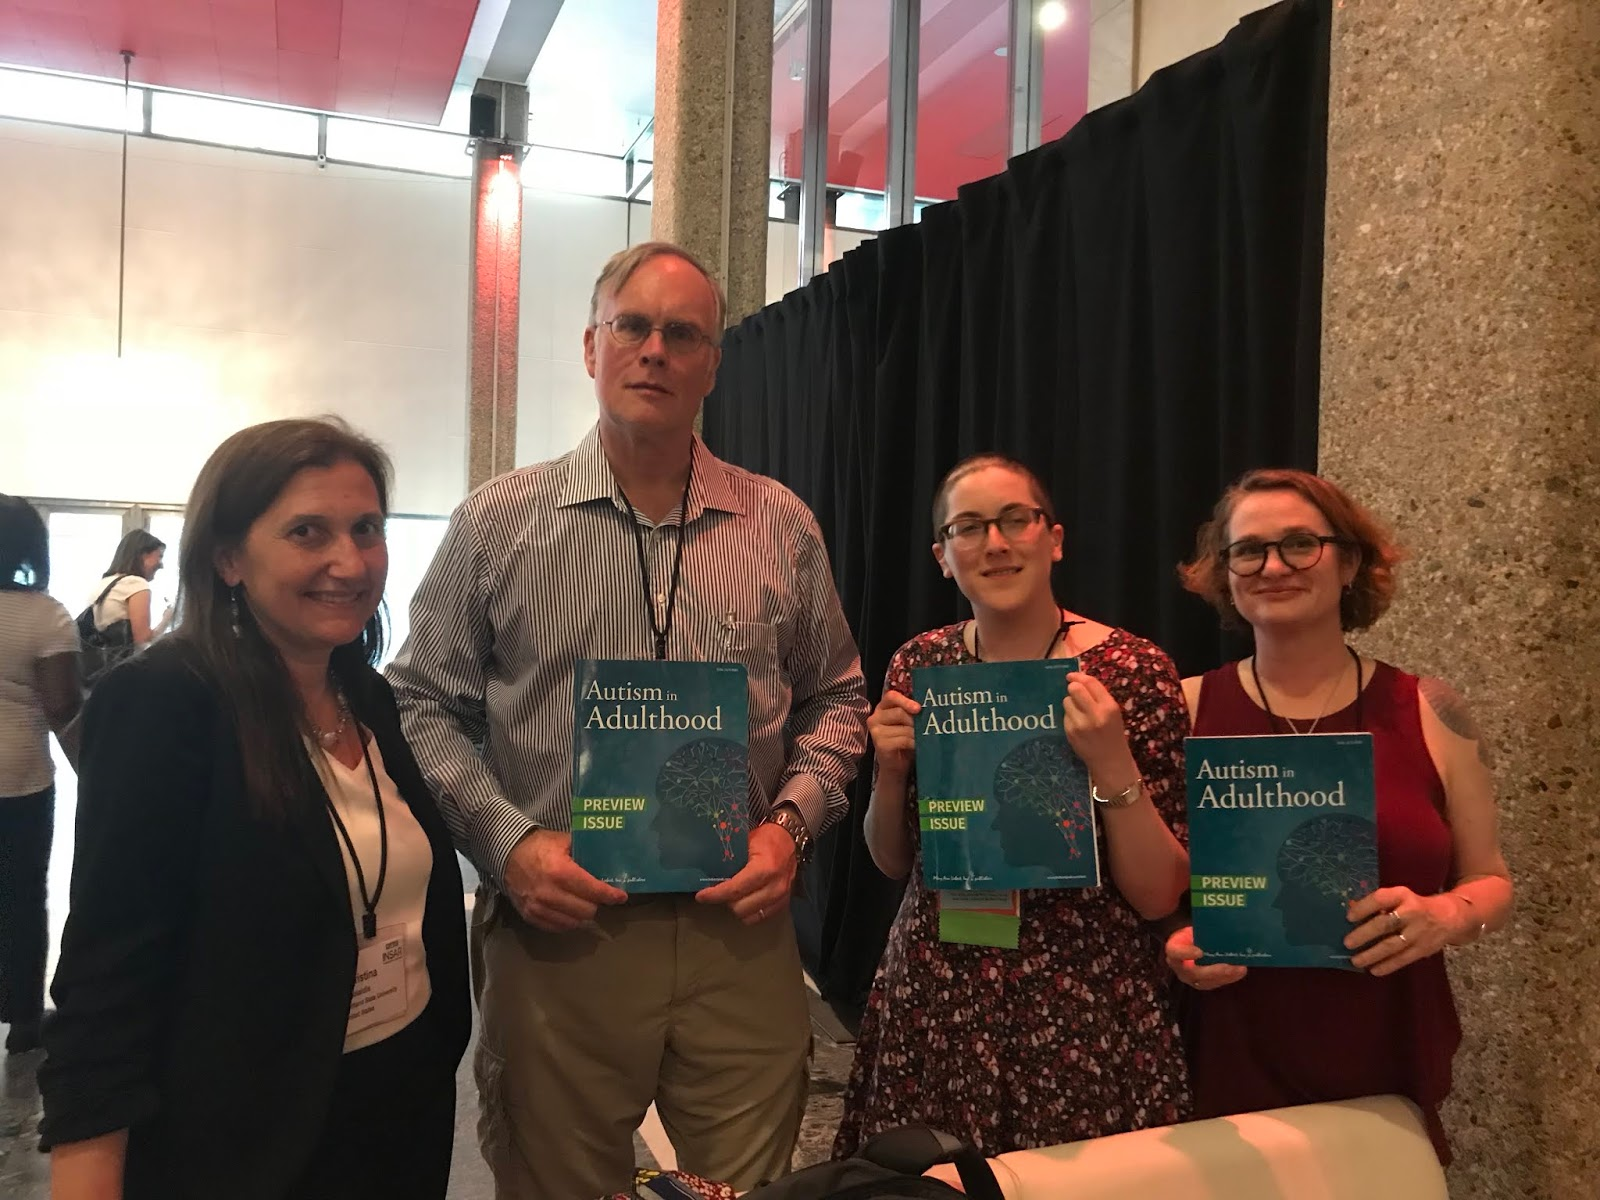 John Elder Robison At Imfar On Autism >> Thinking Person S Guide To Autism How Autism Conferences